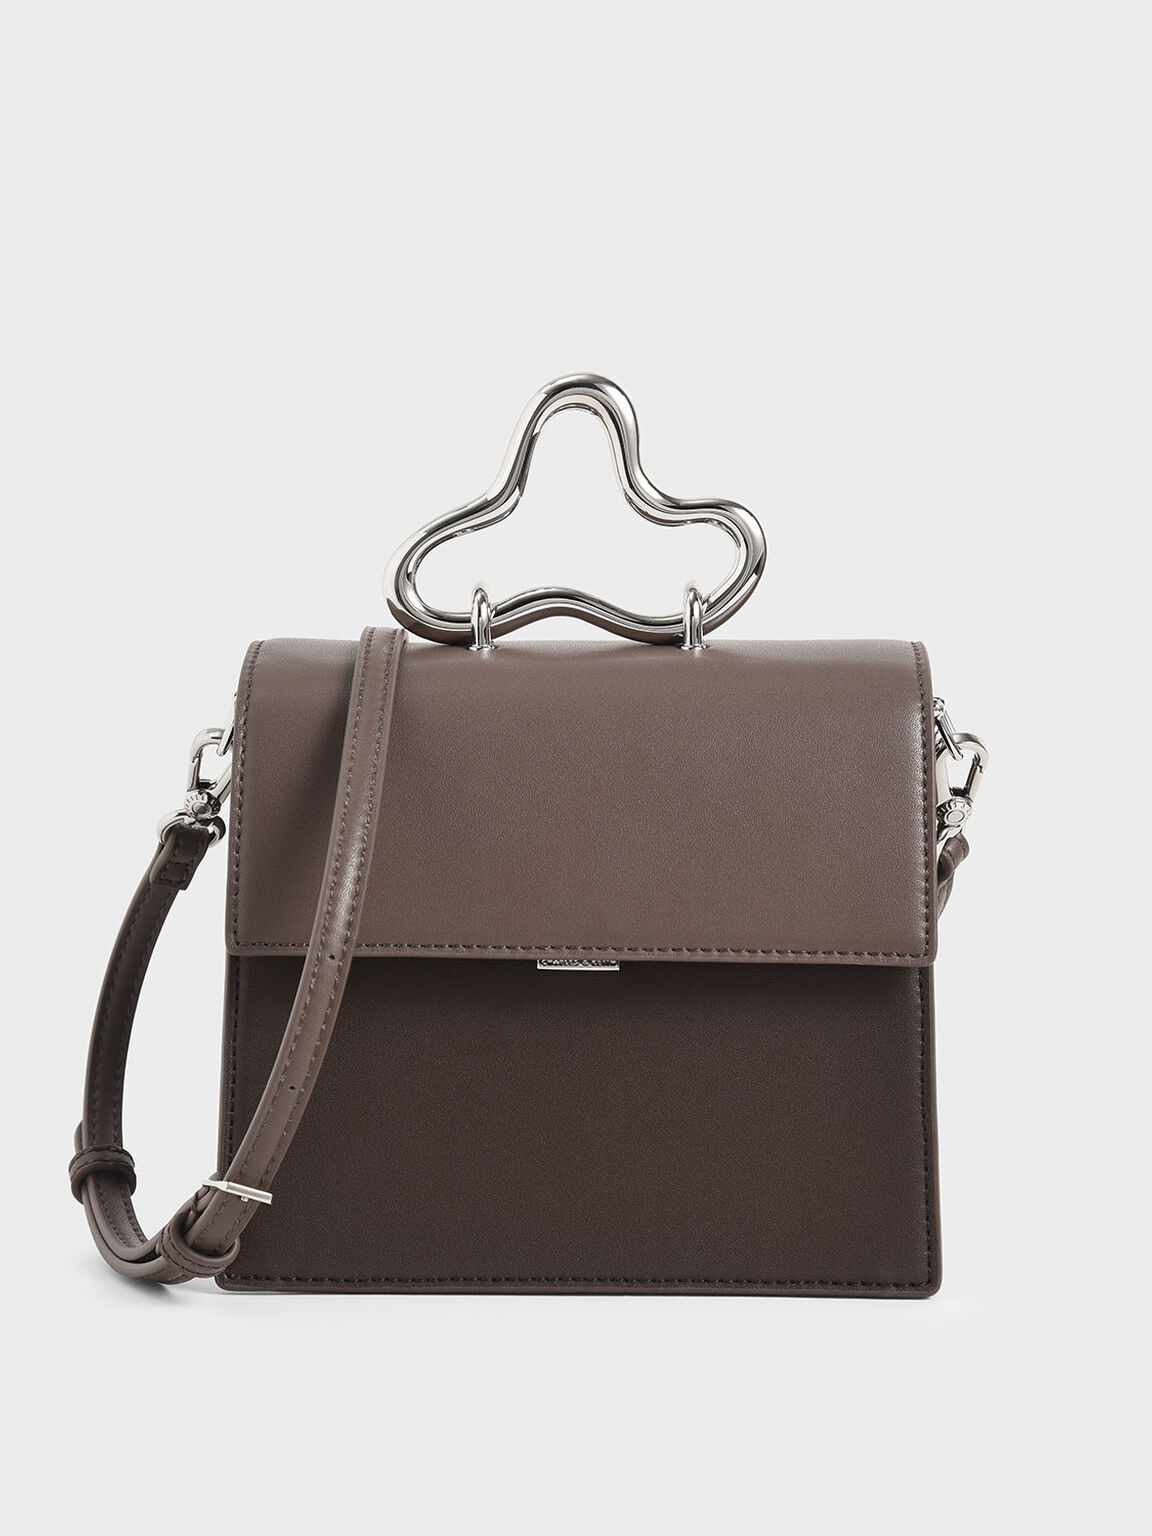 Sculptural Metal Handle Bag, Taupe, hi-res